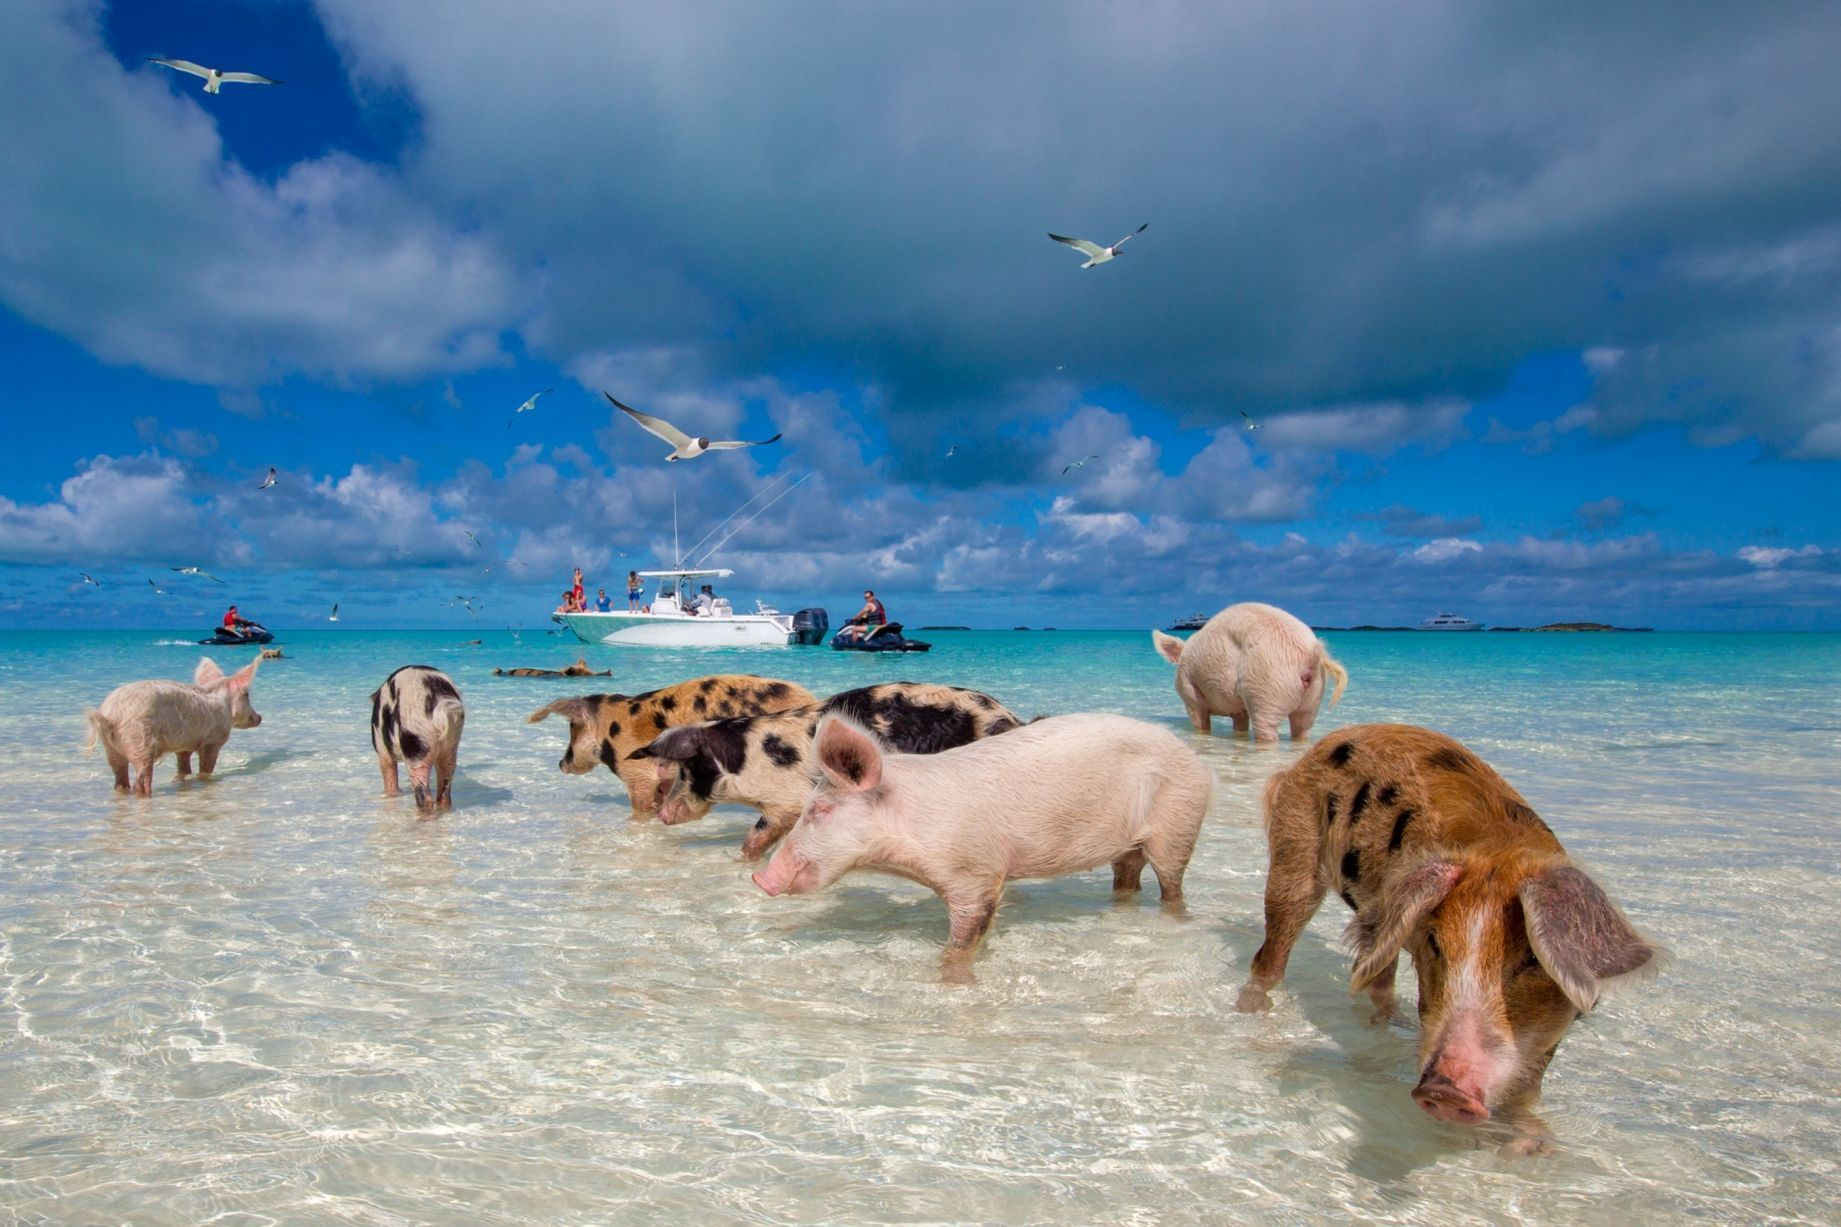 There's An Island In The Bahamas With A Beach Full Of Swimming Pigs